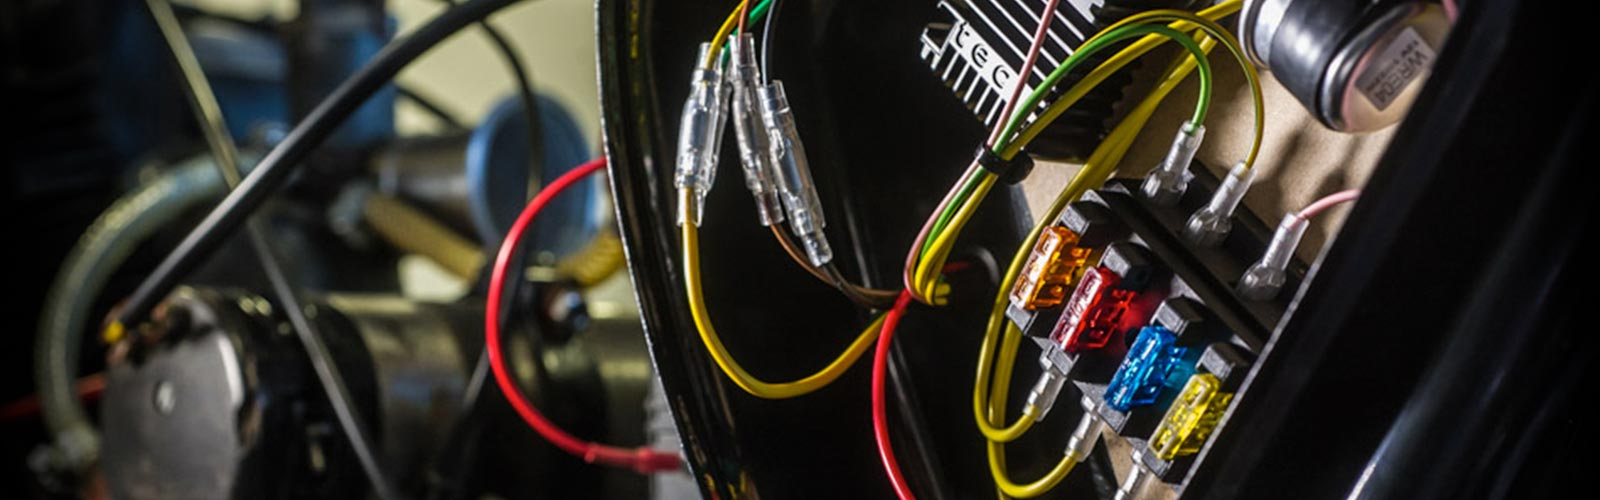 Contacts Build Motorcycle Wiring Looms Rupes Rewires Lives At